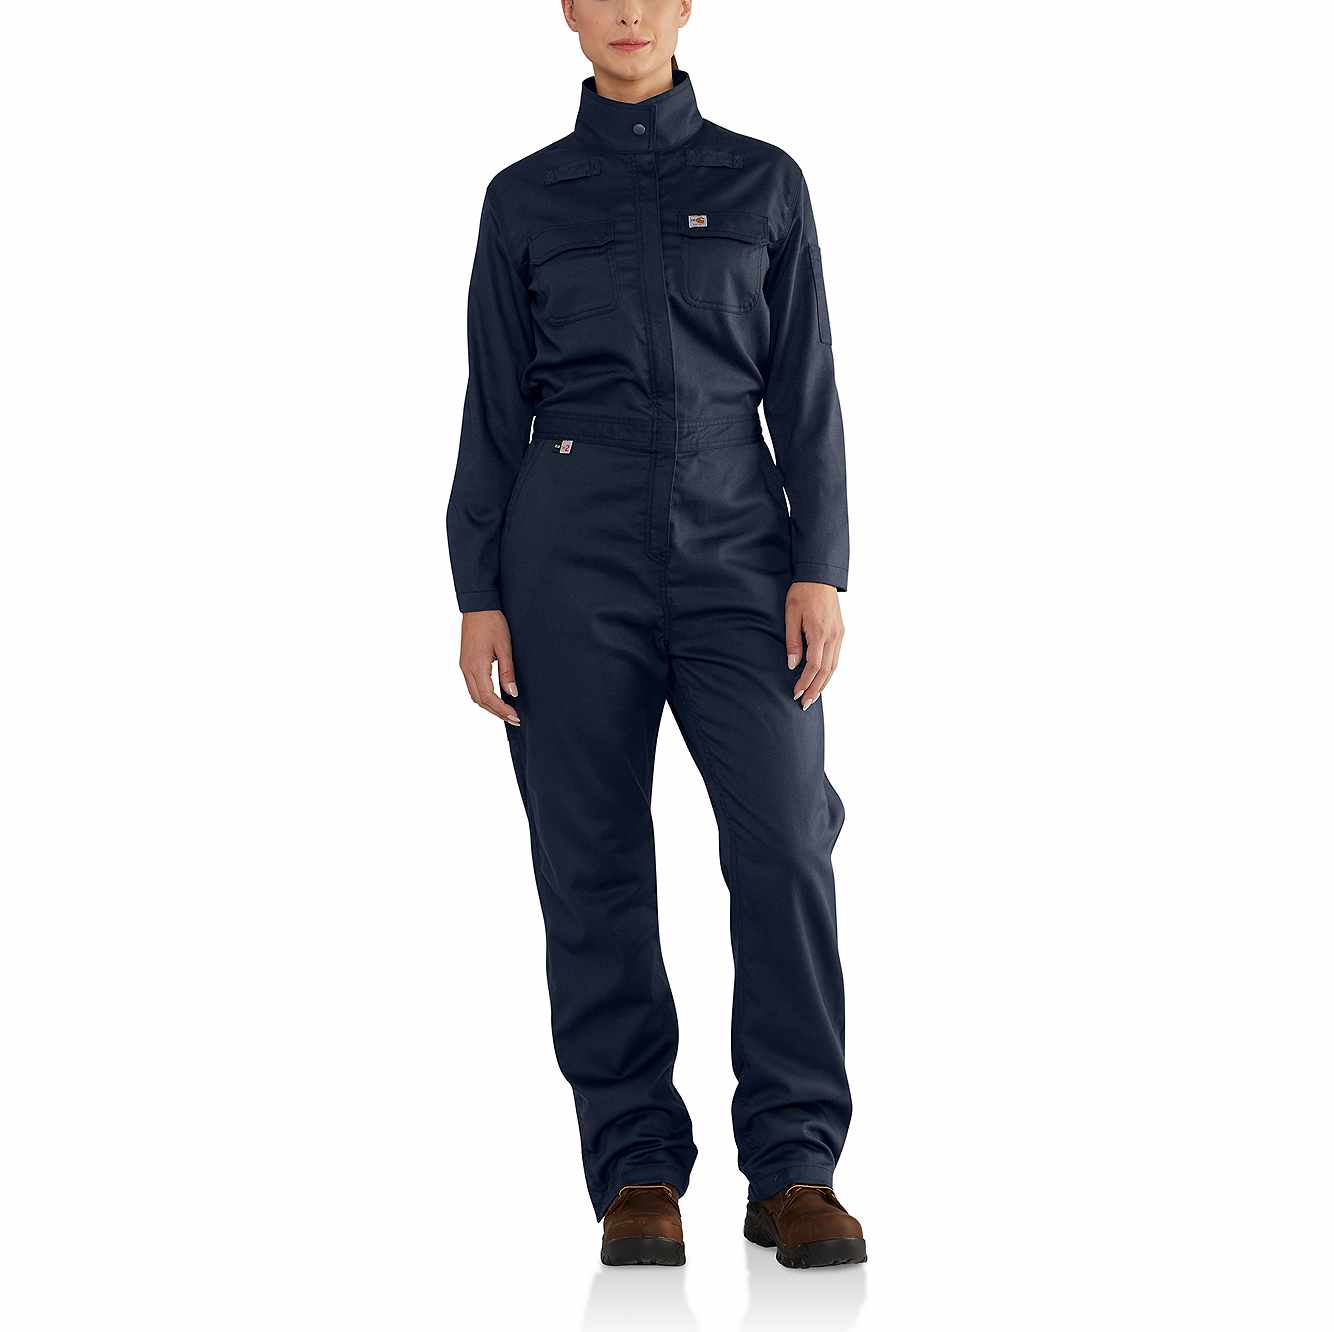 Picture of Women's FR Rugged Flex® Coverall in Dark Navy